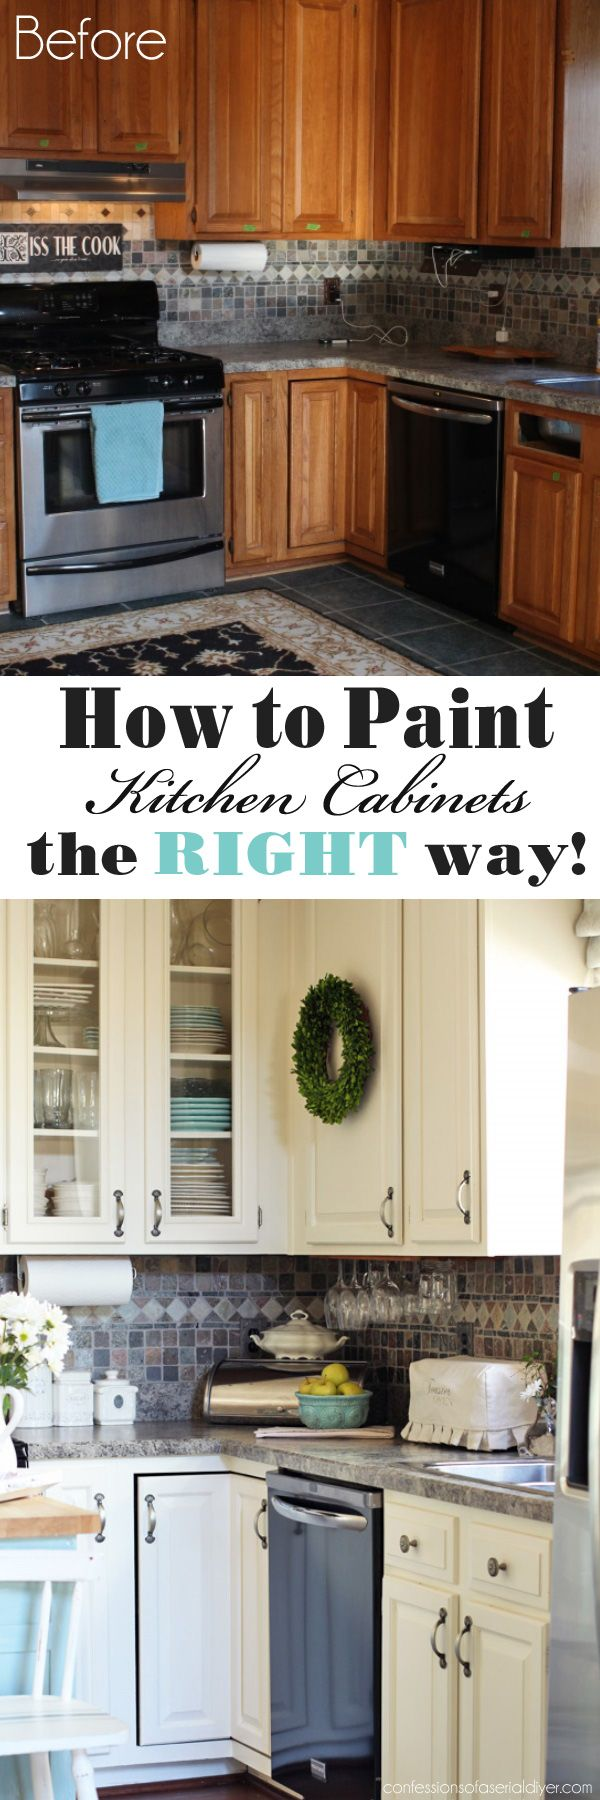 If Youu0027re In The Market To Paint Your Kitchen Cabinets, You Have Come To  The Right Place! I Am Sharing Every Single Solitary Step To A Brand New